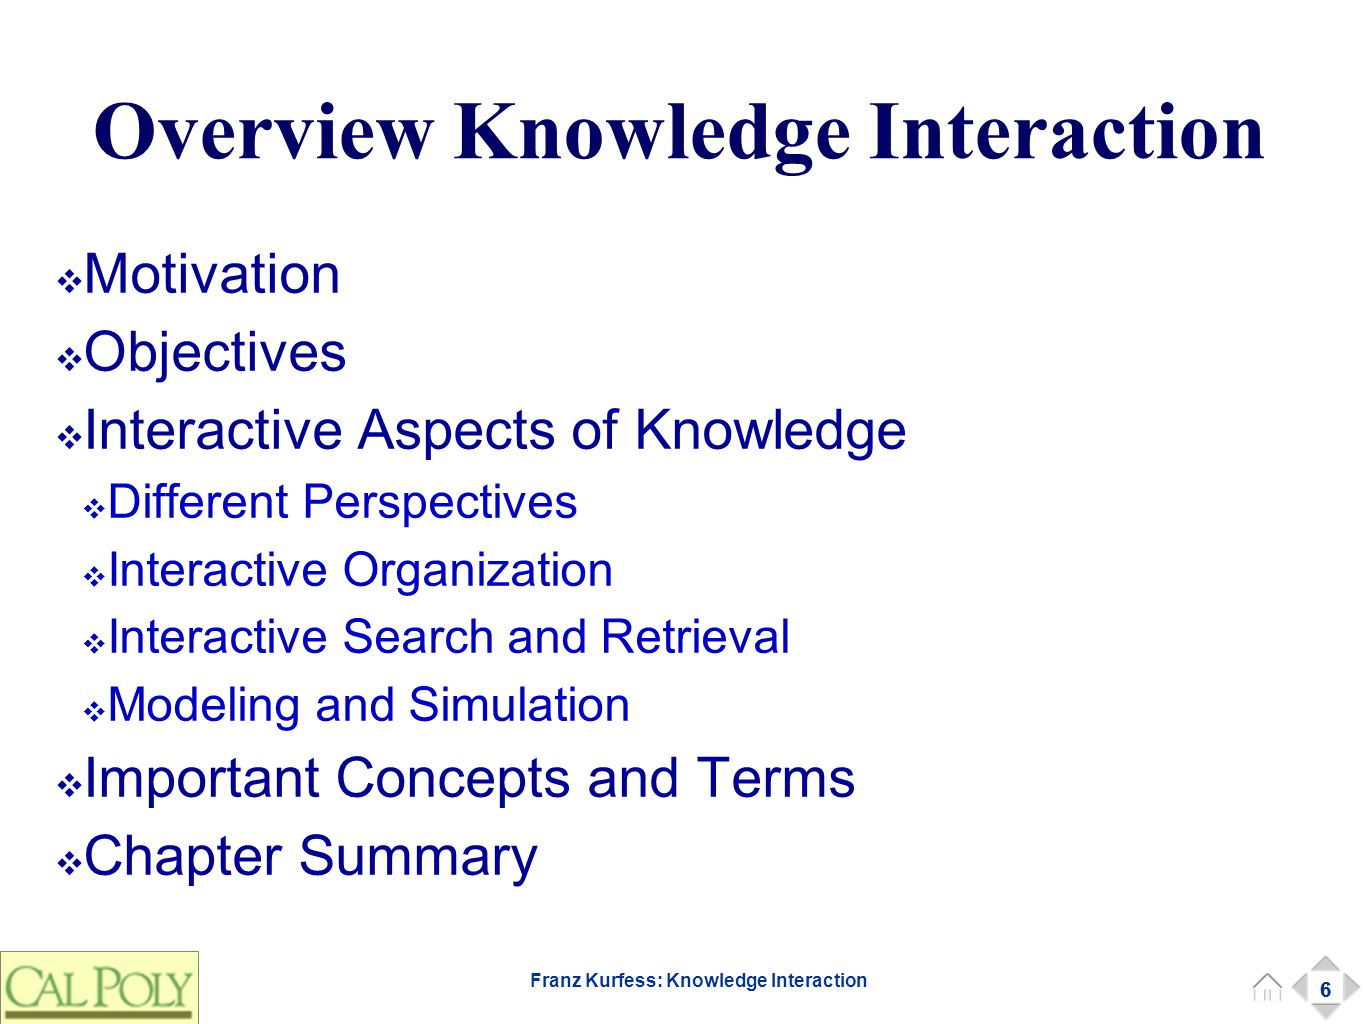 6 Franz Kurfess: Knowledge Interaction Overview Knowledge Interaction ❖ Motivation ❖ Objectives ❖ Interactive Aspects of Knowledge ❖ Different Perspec